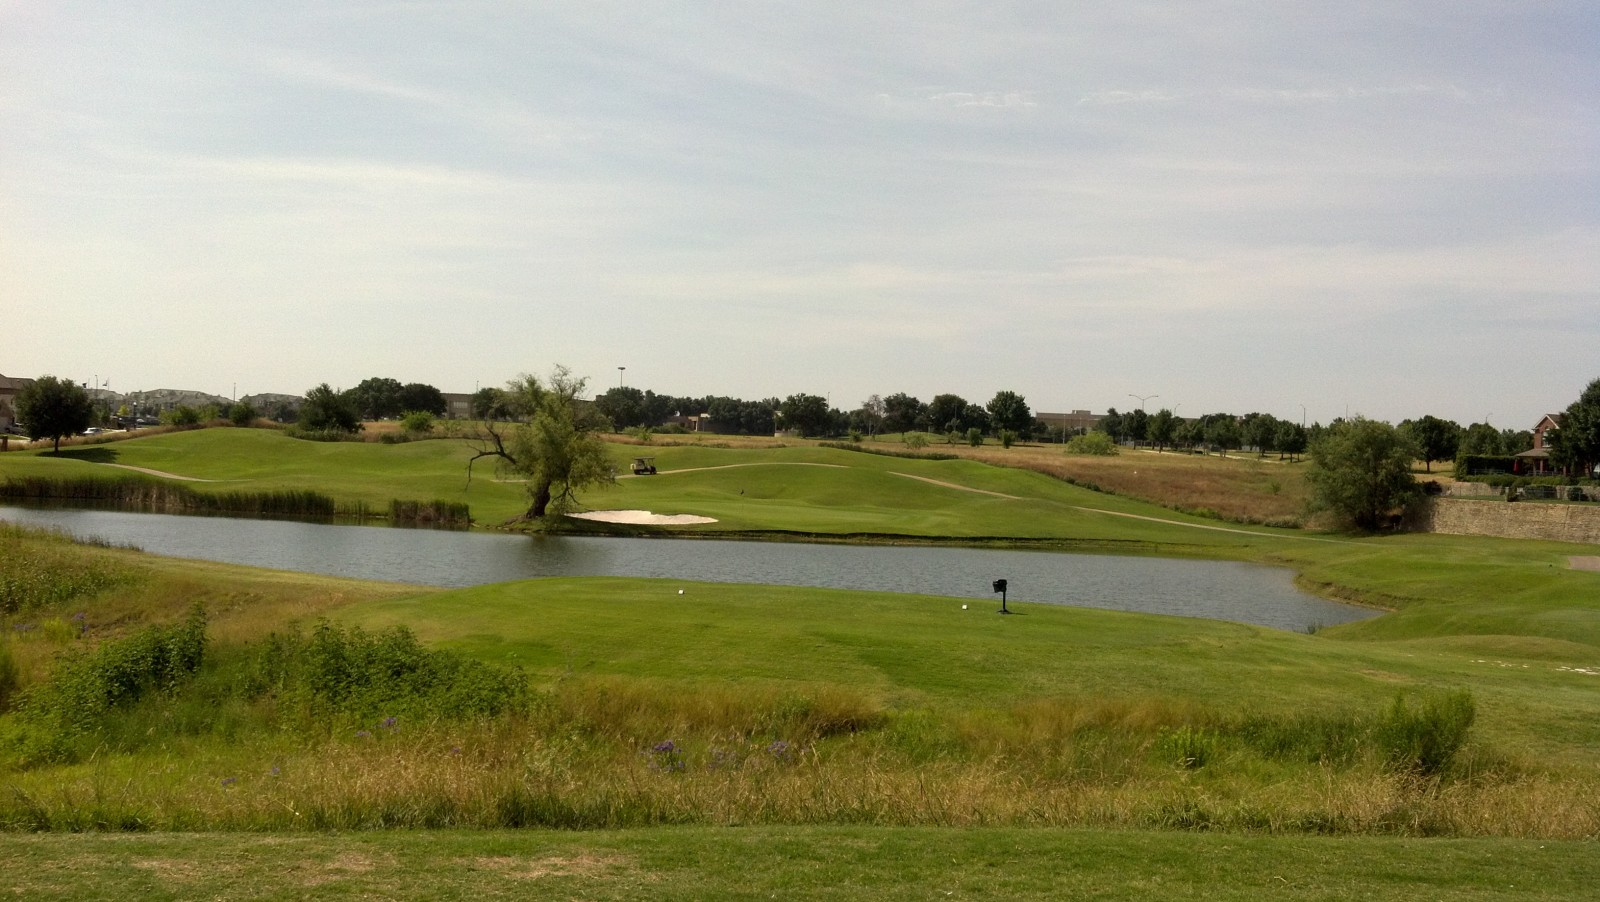 Fossil Creak Par 3 10th